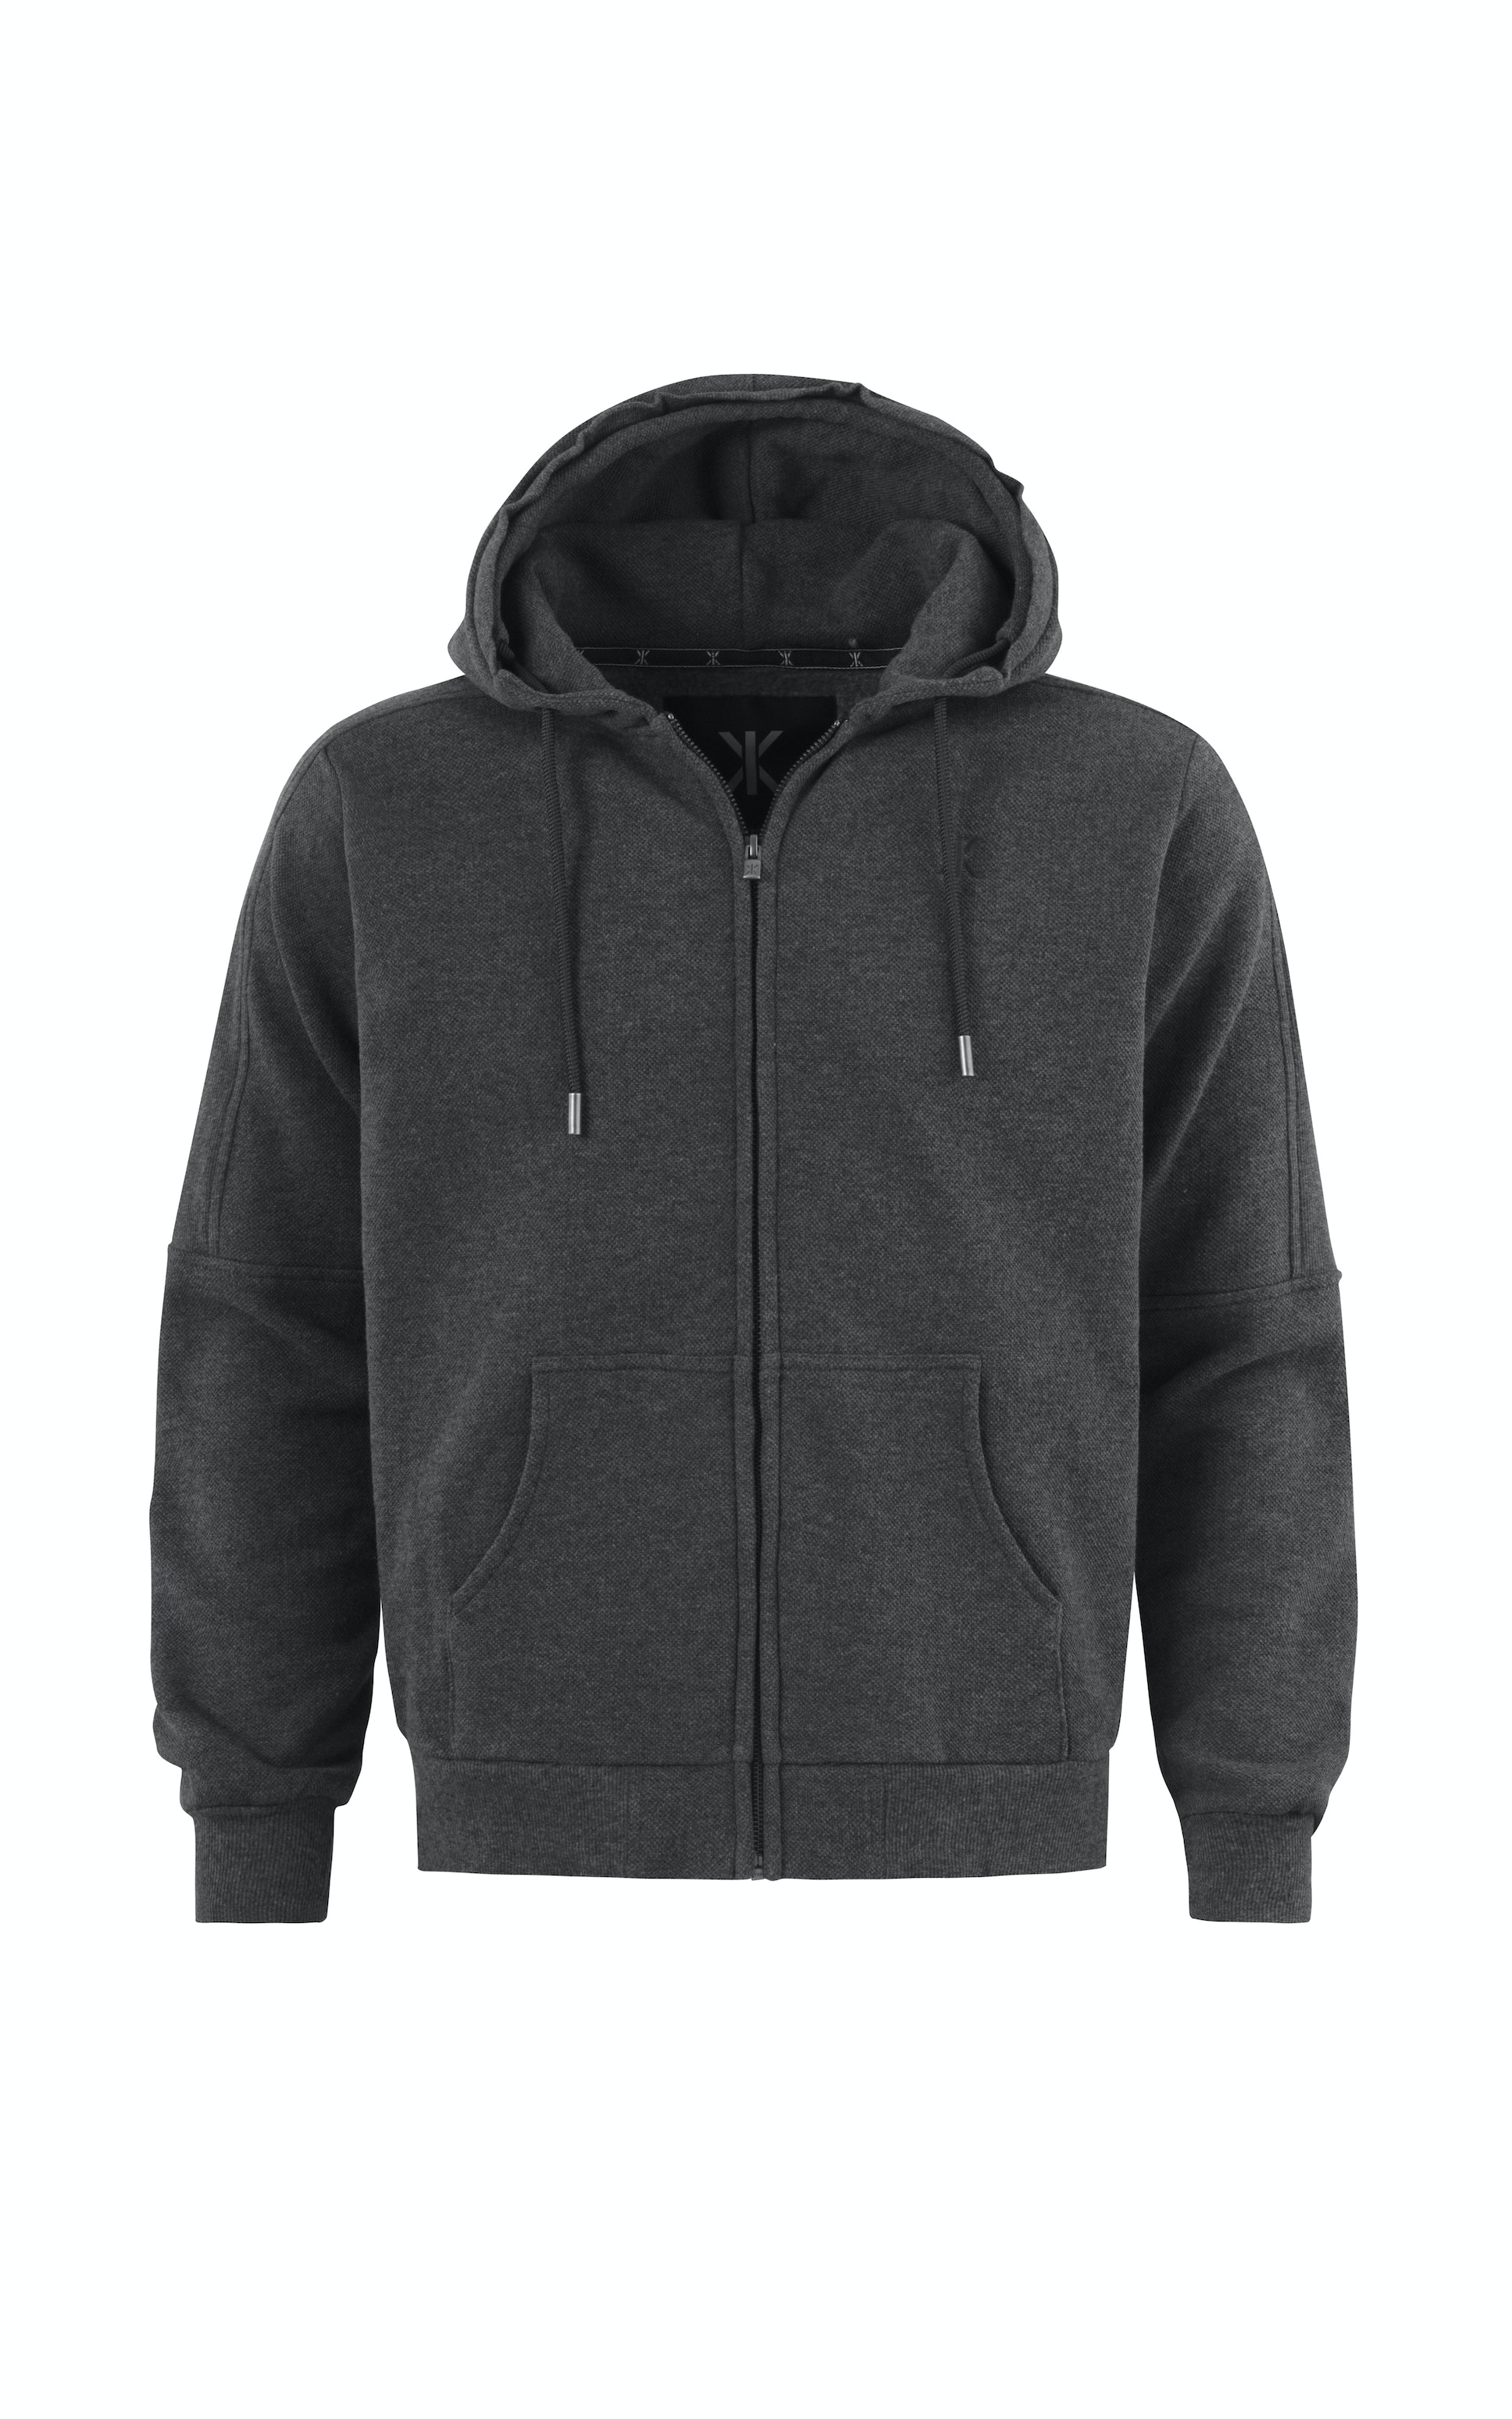 Shop for gray zip up hoodie online at Target. Free shipping on purchases over $35 and save 5% every day with your Target REDcard.